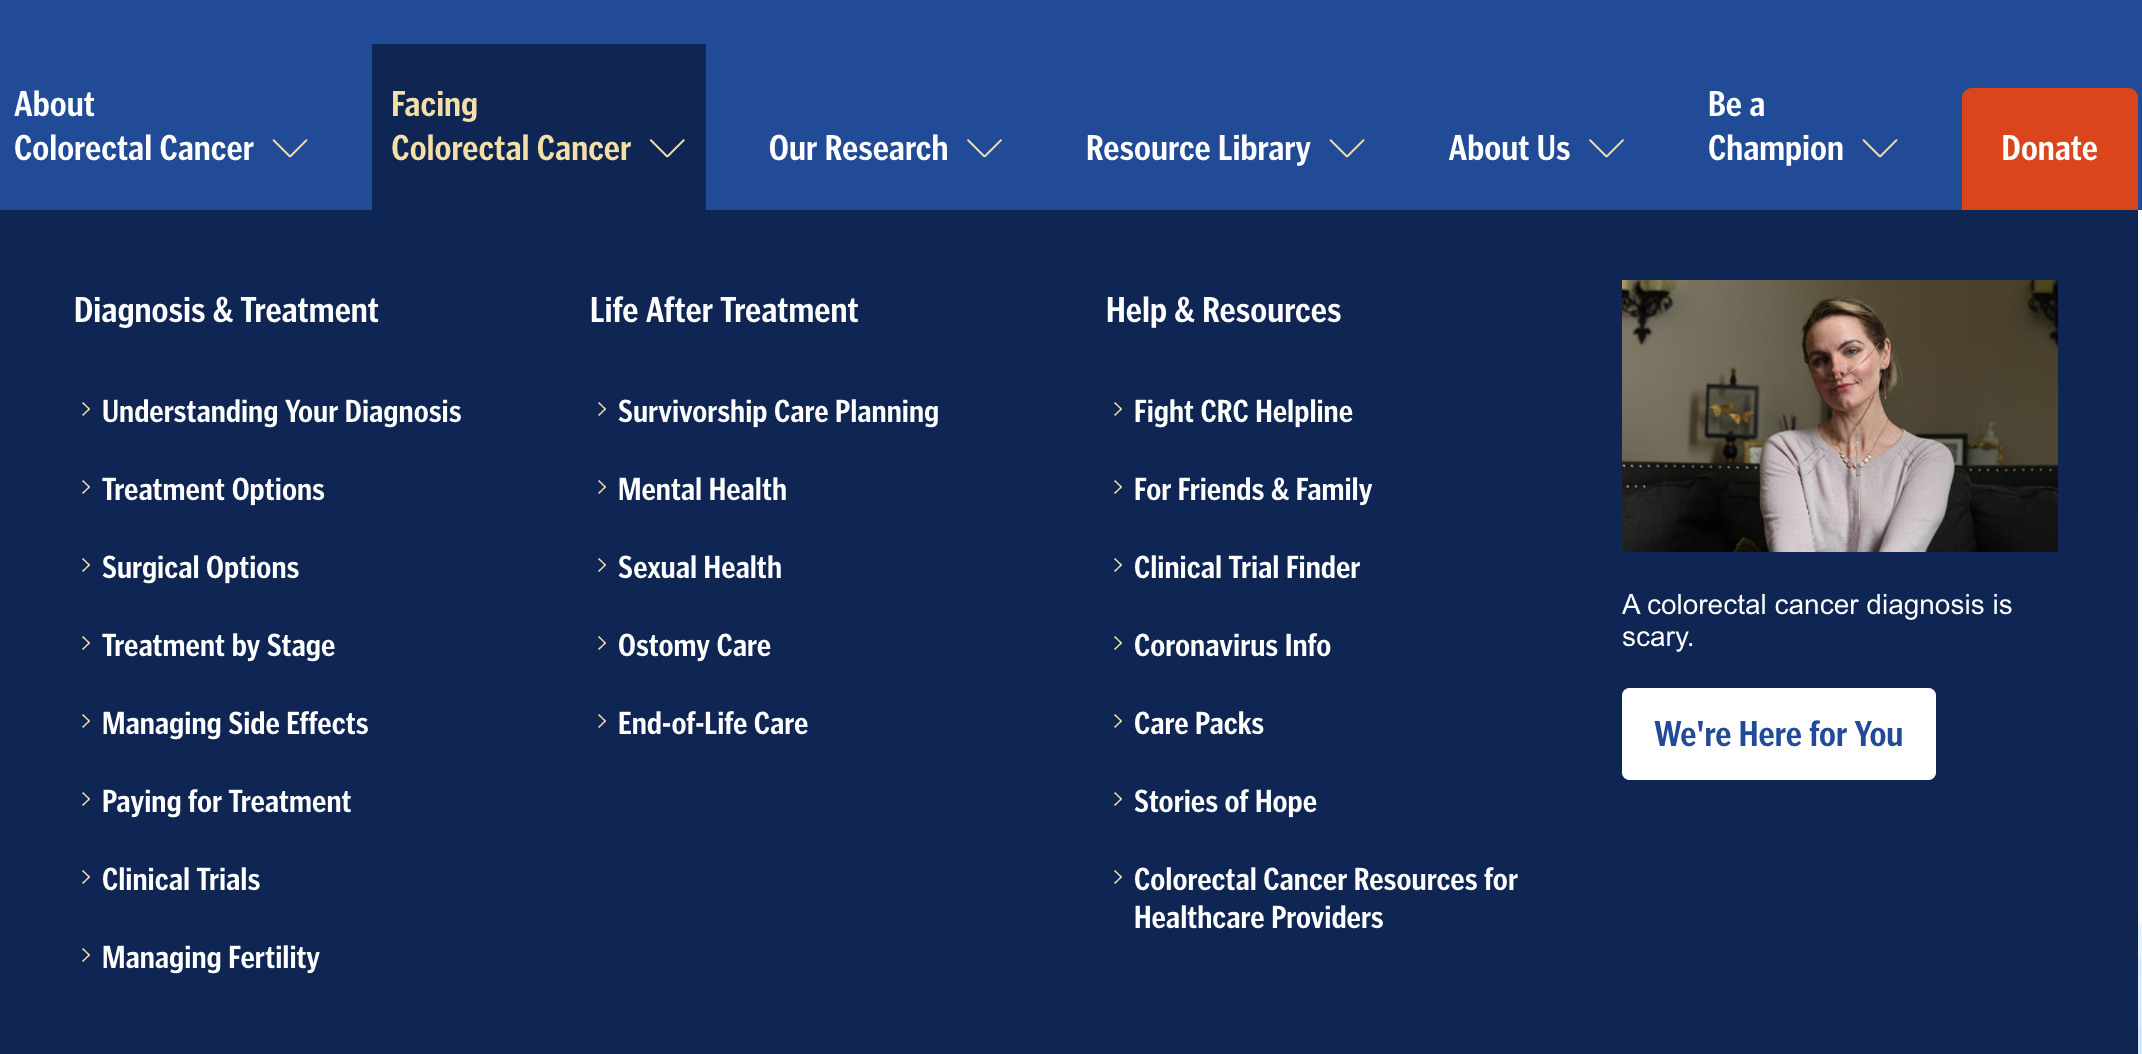 image of the expanded megamenu for the Facing Colorectal Cancer main page, showing all of the subpages links